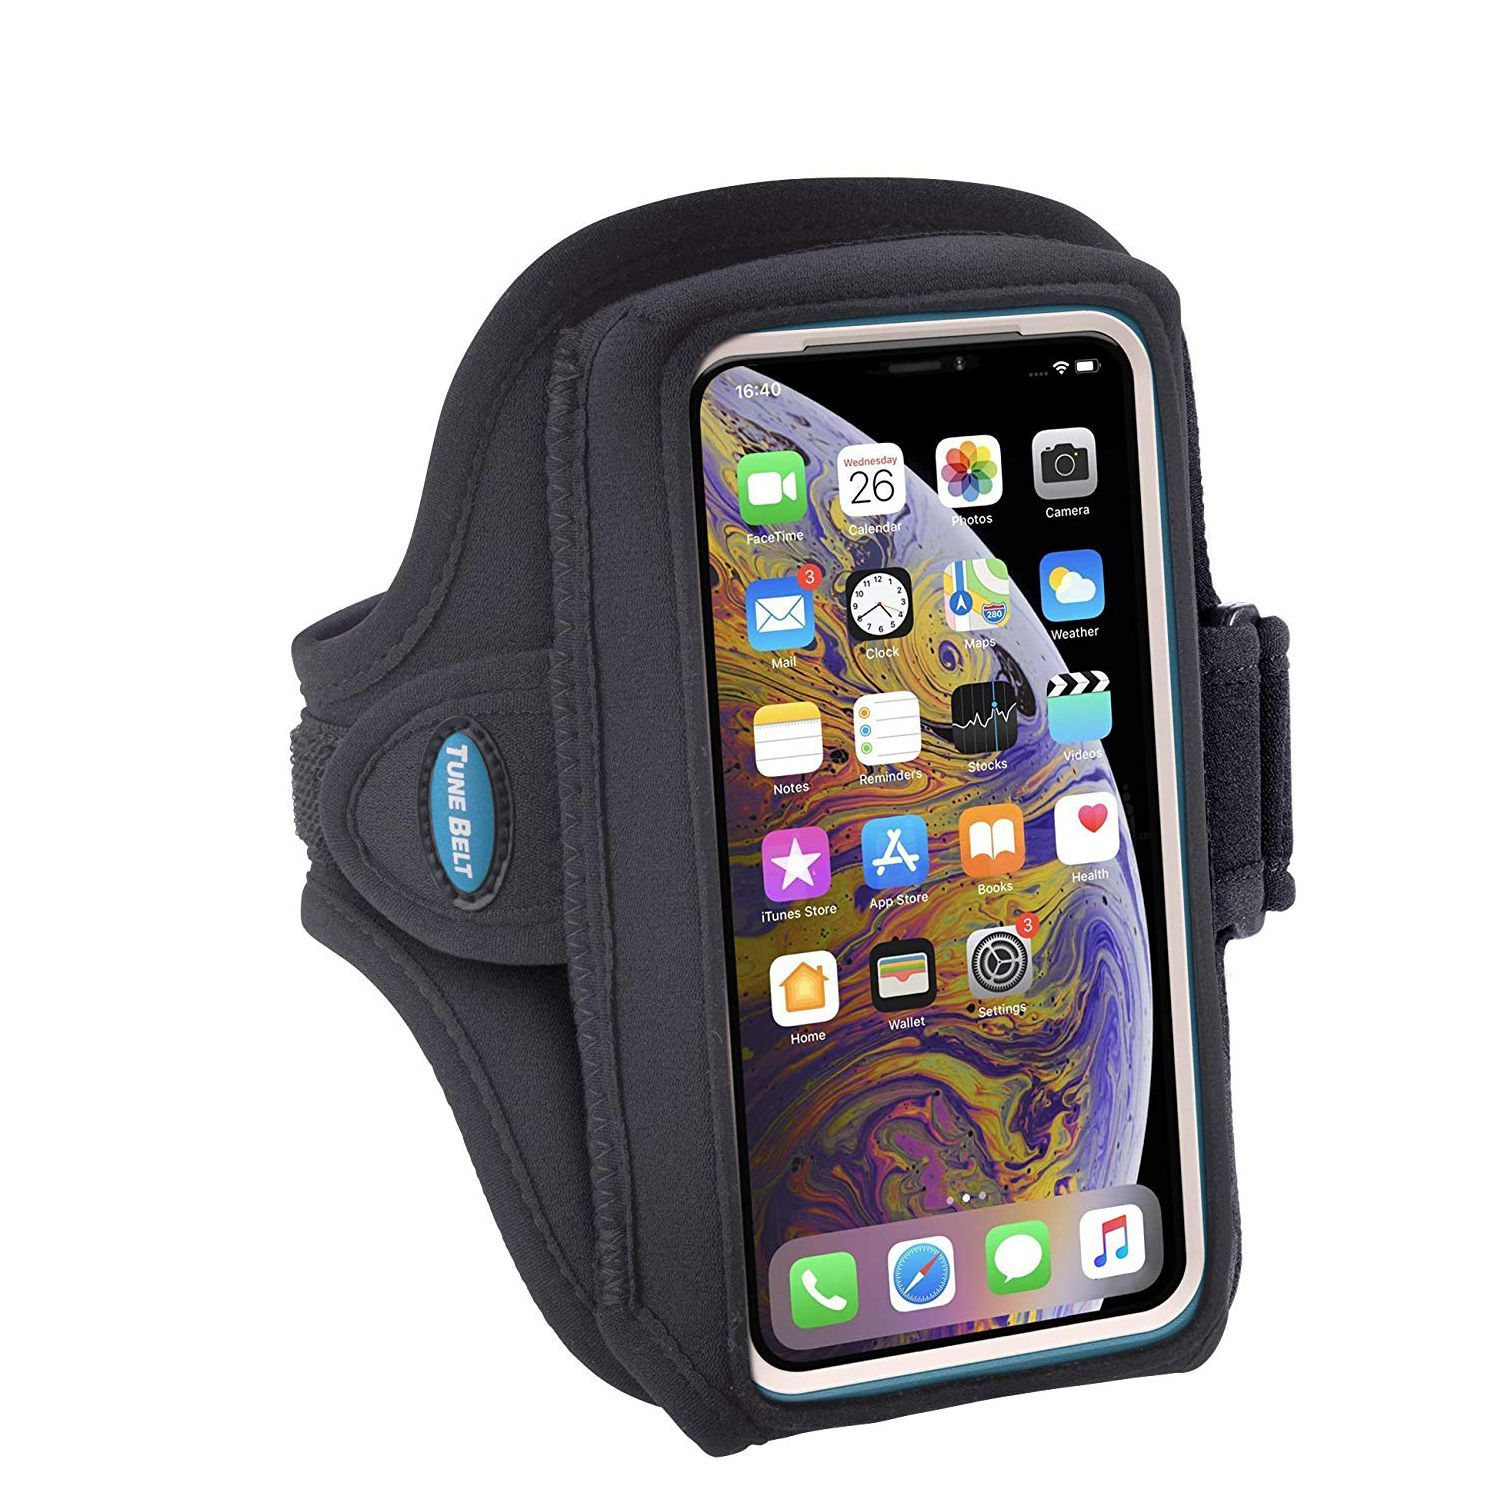 GBOS® Sports Gym Exercise Running Armband Case Cover For HTC Desire All Models